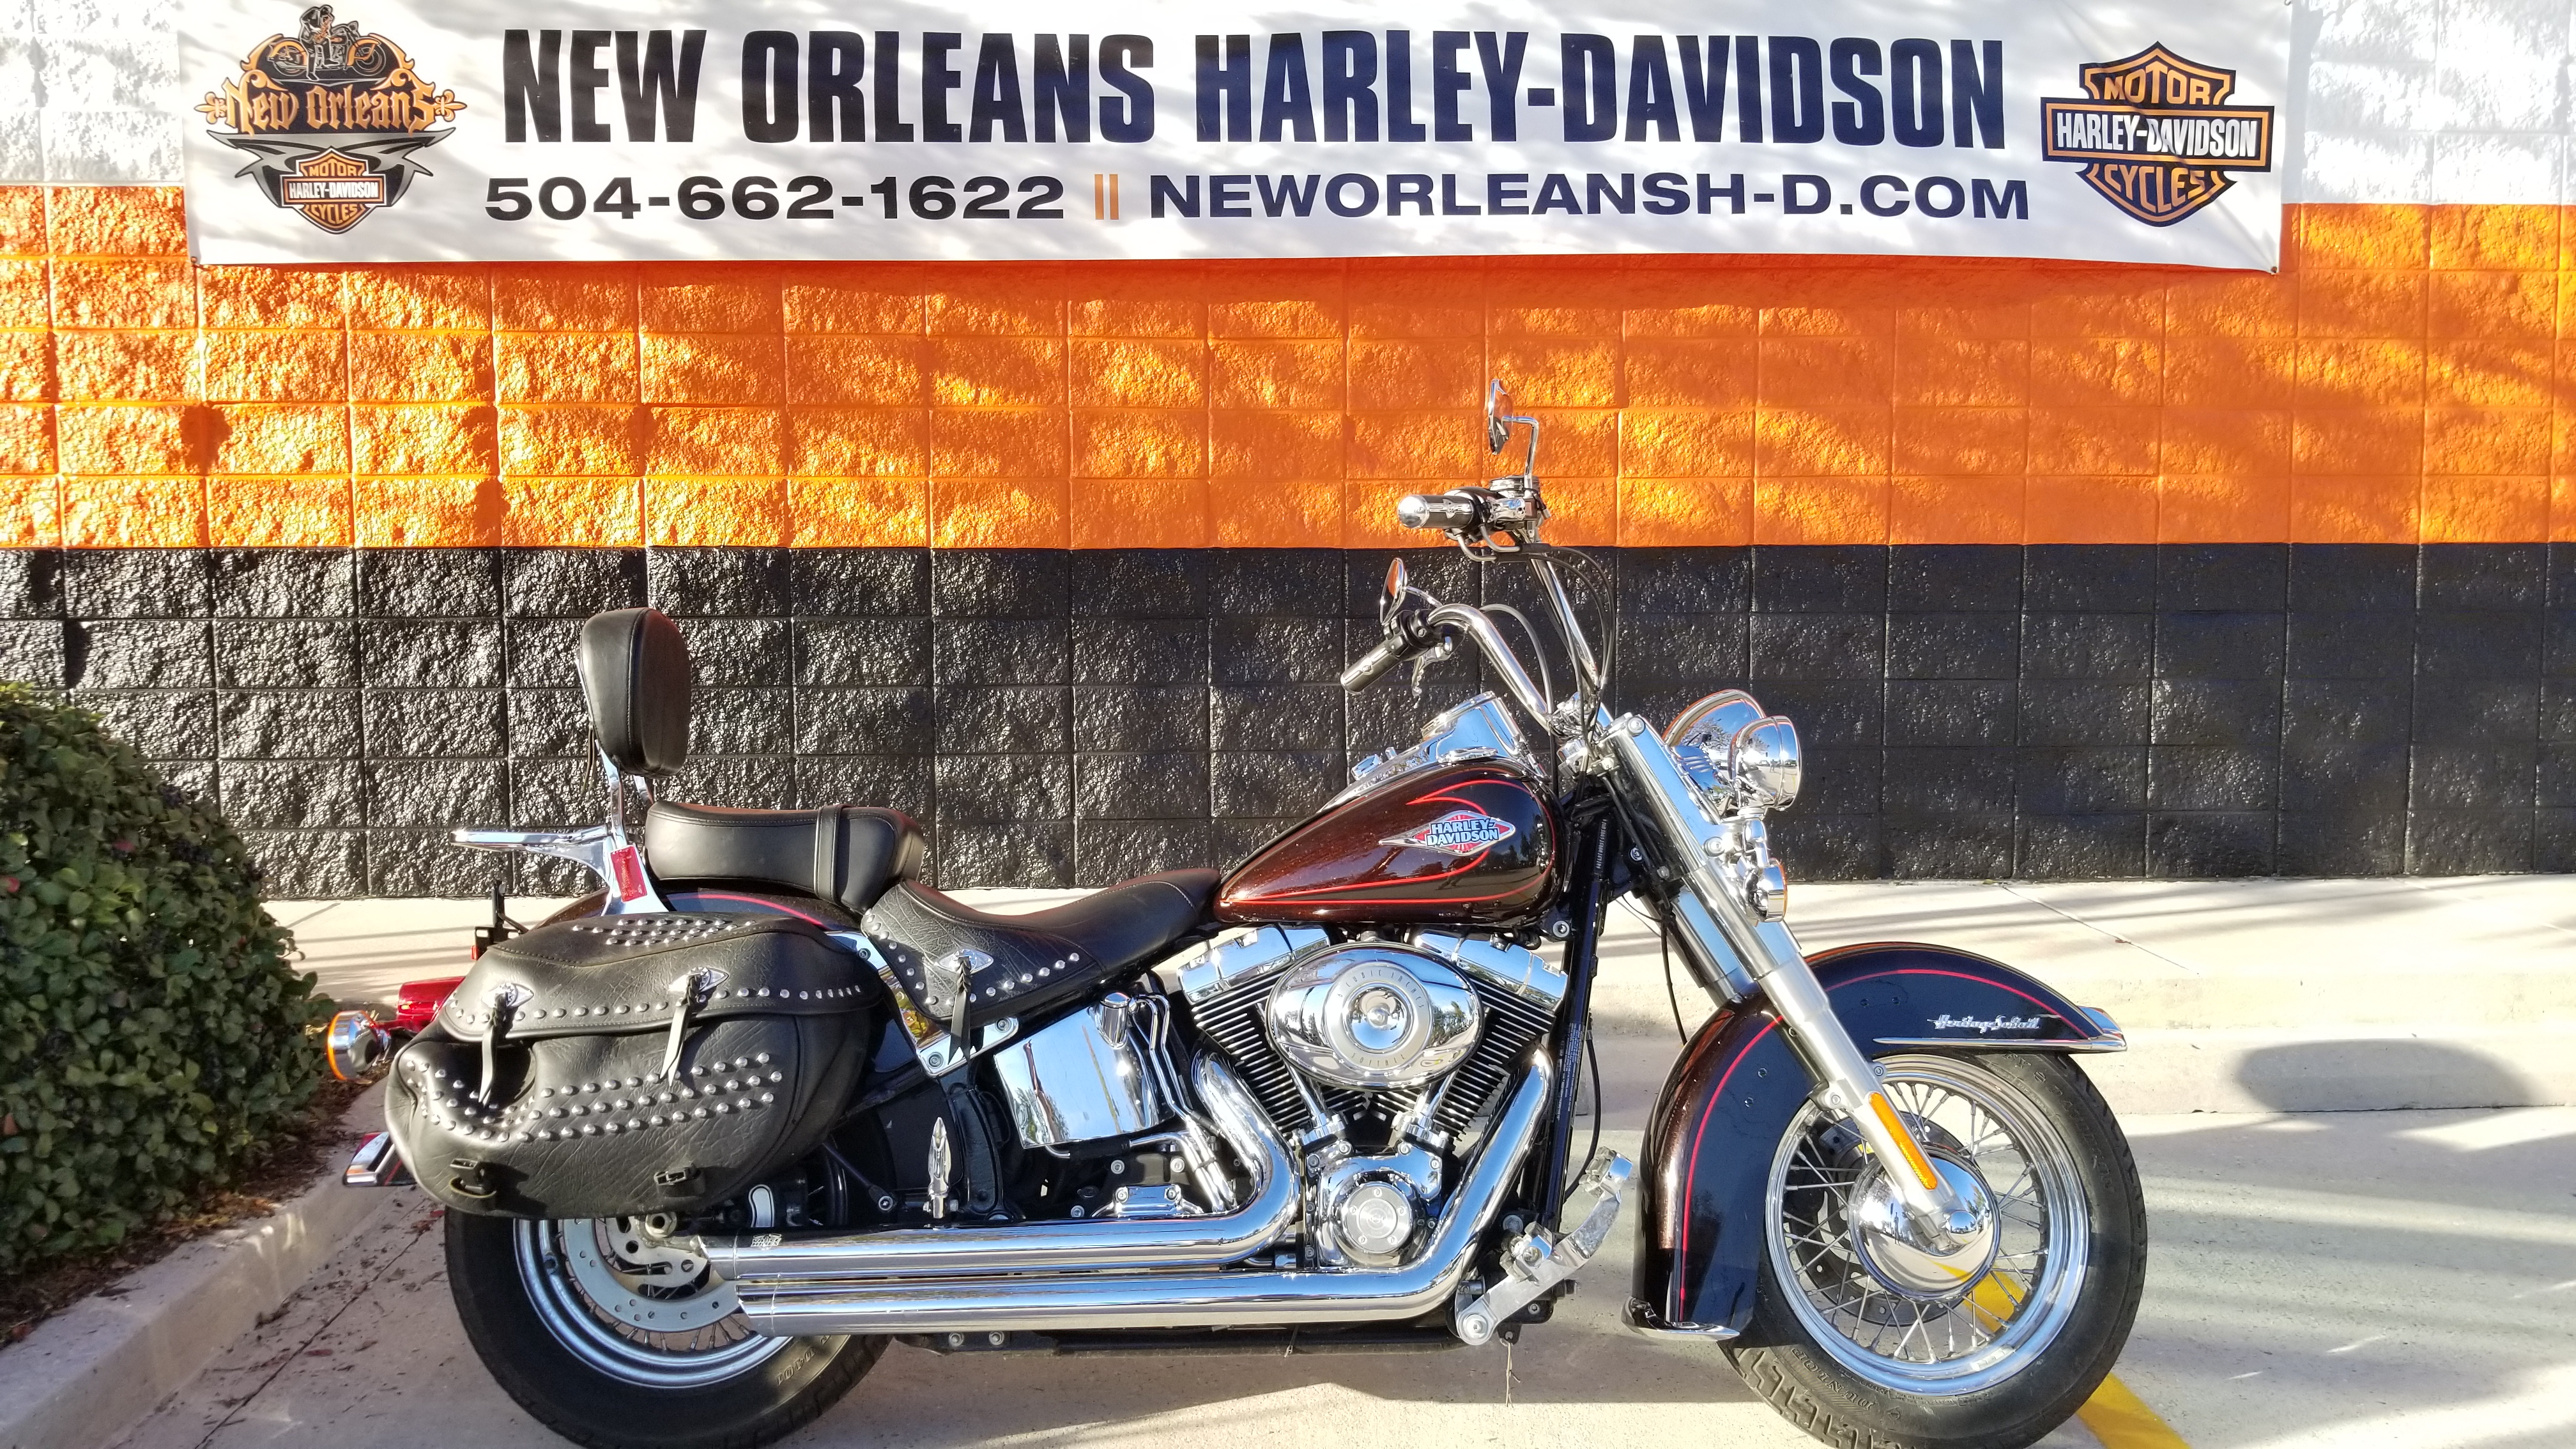 Pre-Owned 2011 Harley-Davidson Heritage Softail Classic FLSTC